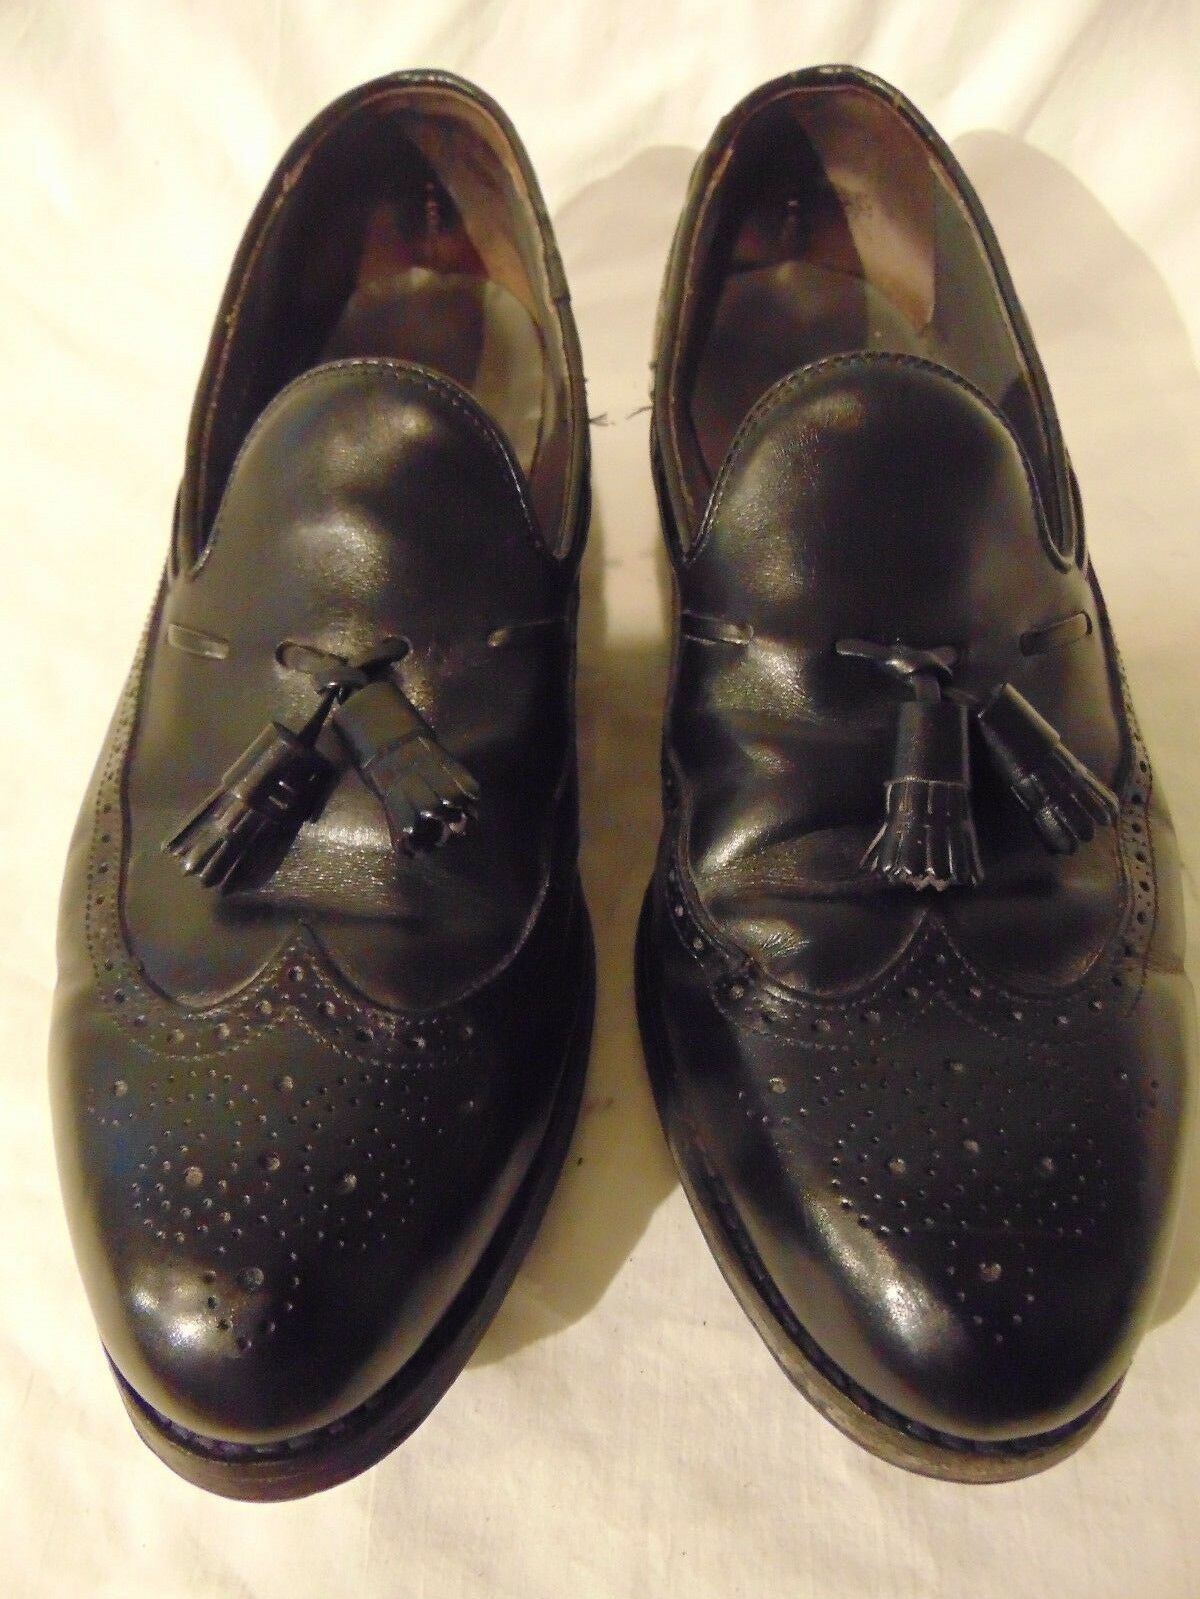 Men's Foot Joy Classic Black Leather Wing Tip Dress shoes Size 9.5 D Made U.S.A.